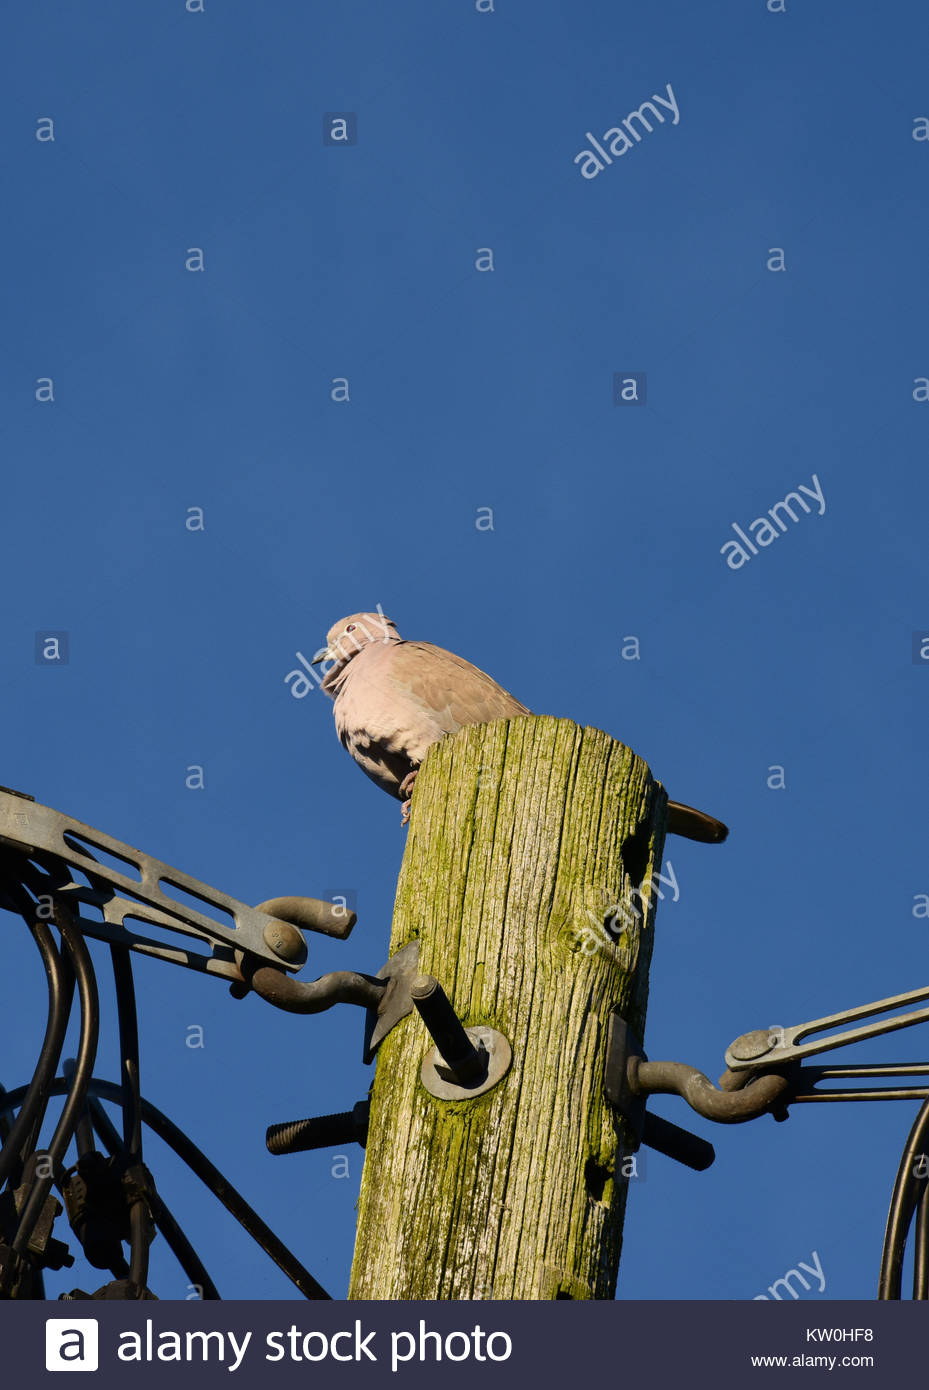 Collared dove perched on a power pole with a clear blue sky behind. - Stock Image